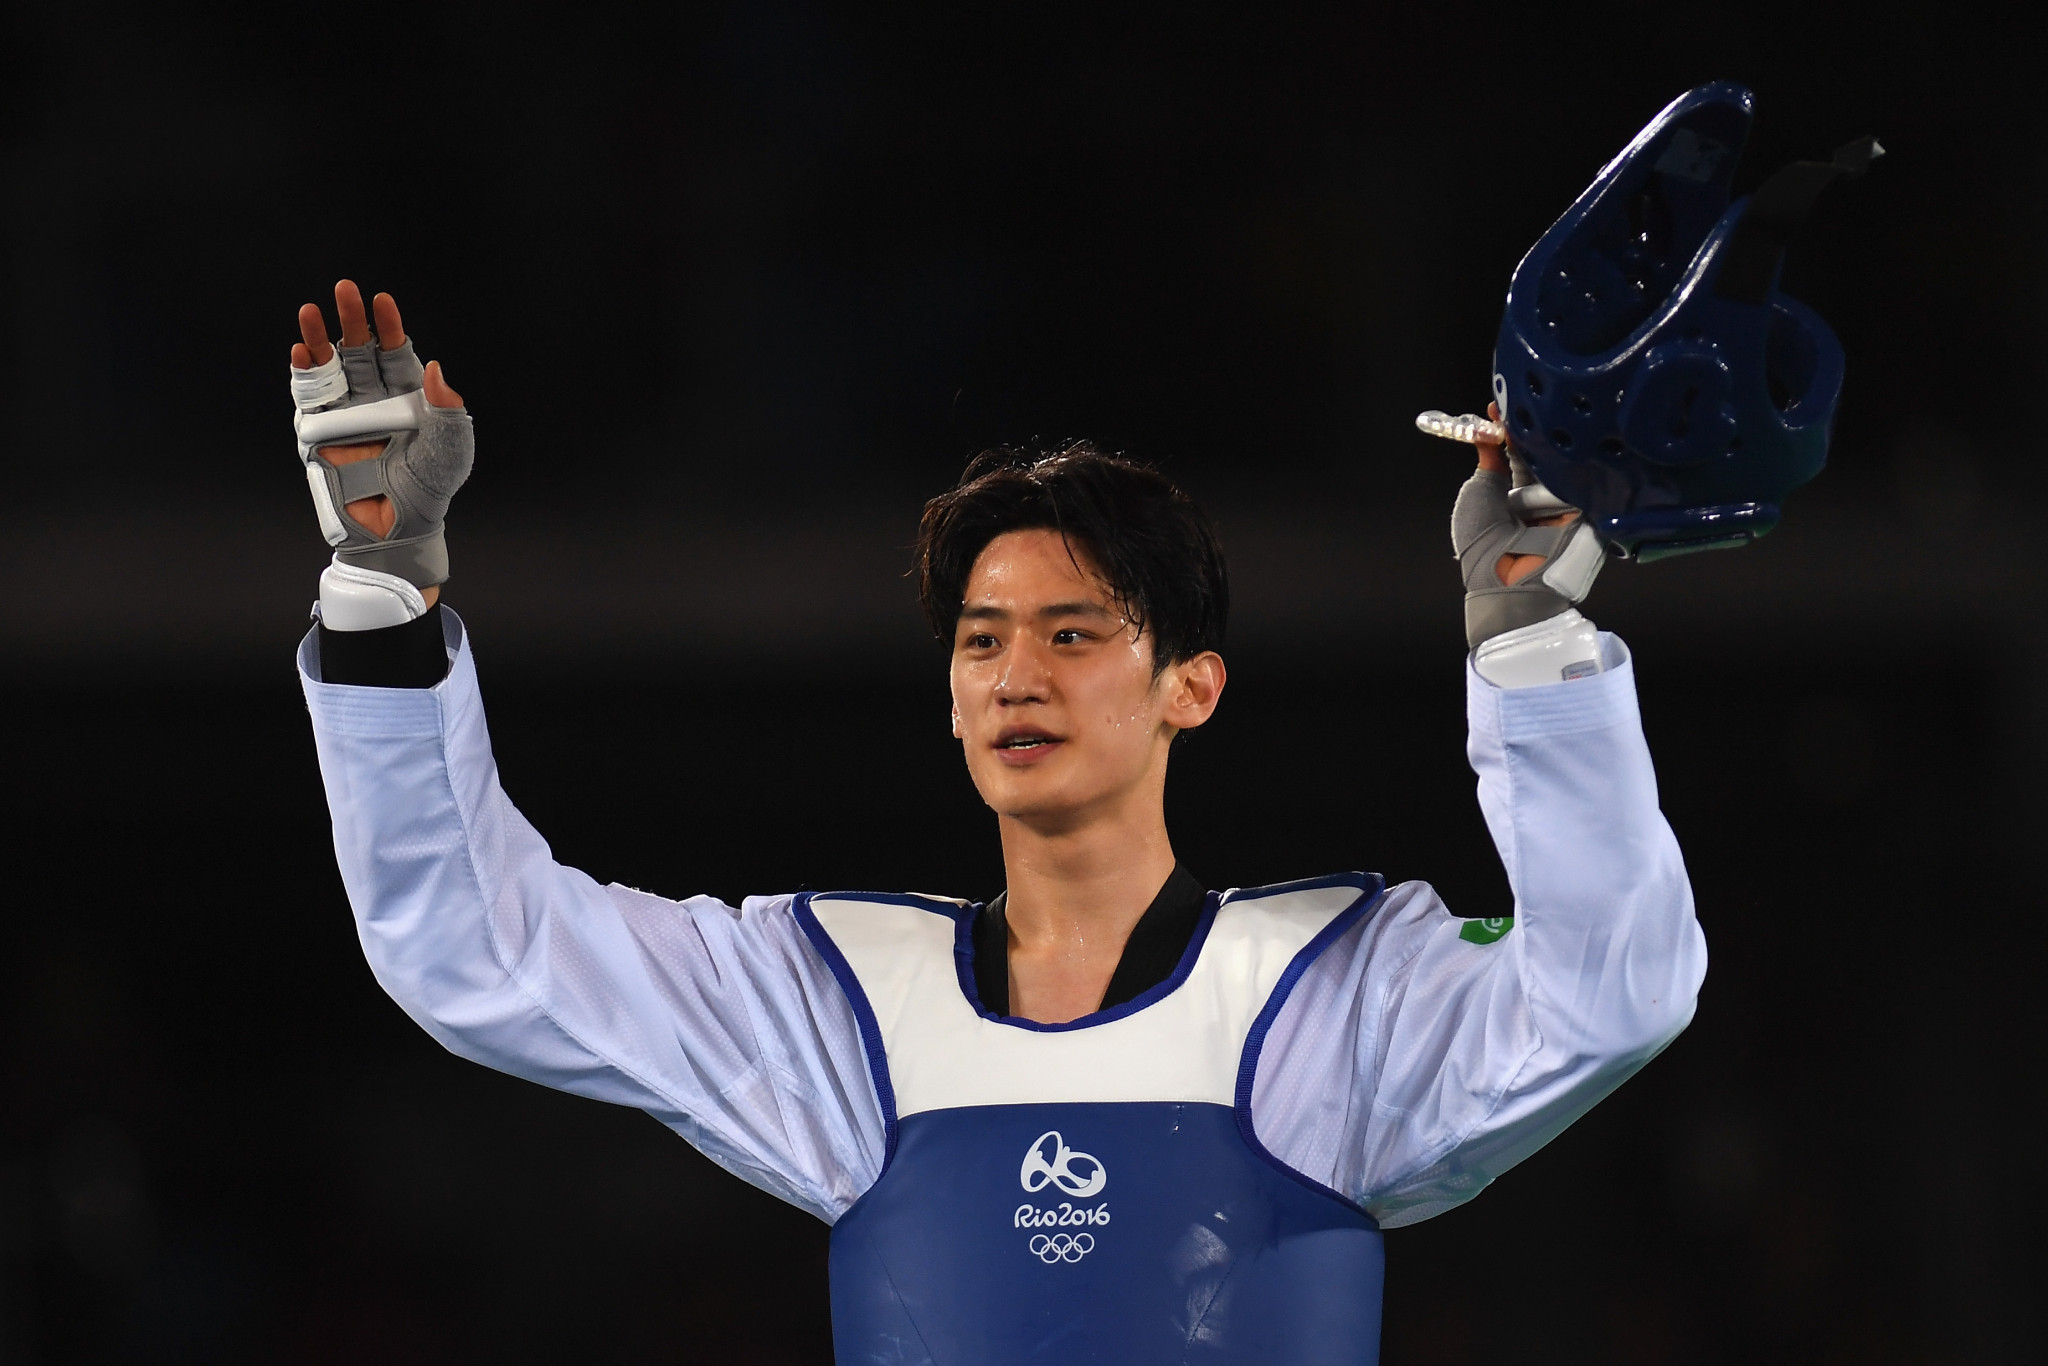 South Korea's Lee Dae-hoon was one of three winners on the opening day of the World Taekwondo Grand Prix in Rome ©Getty Images